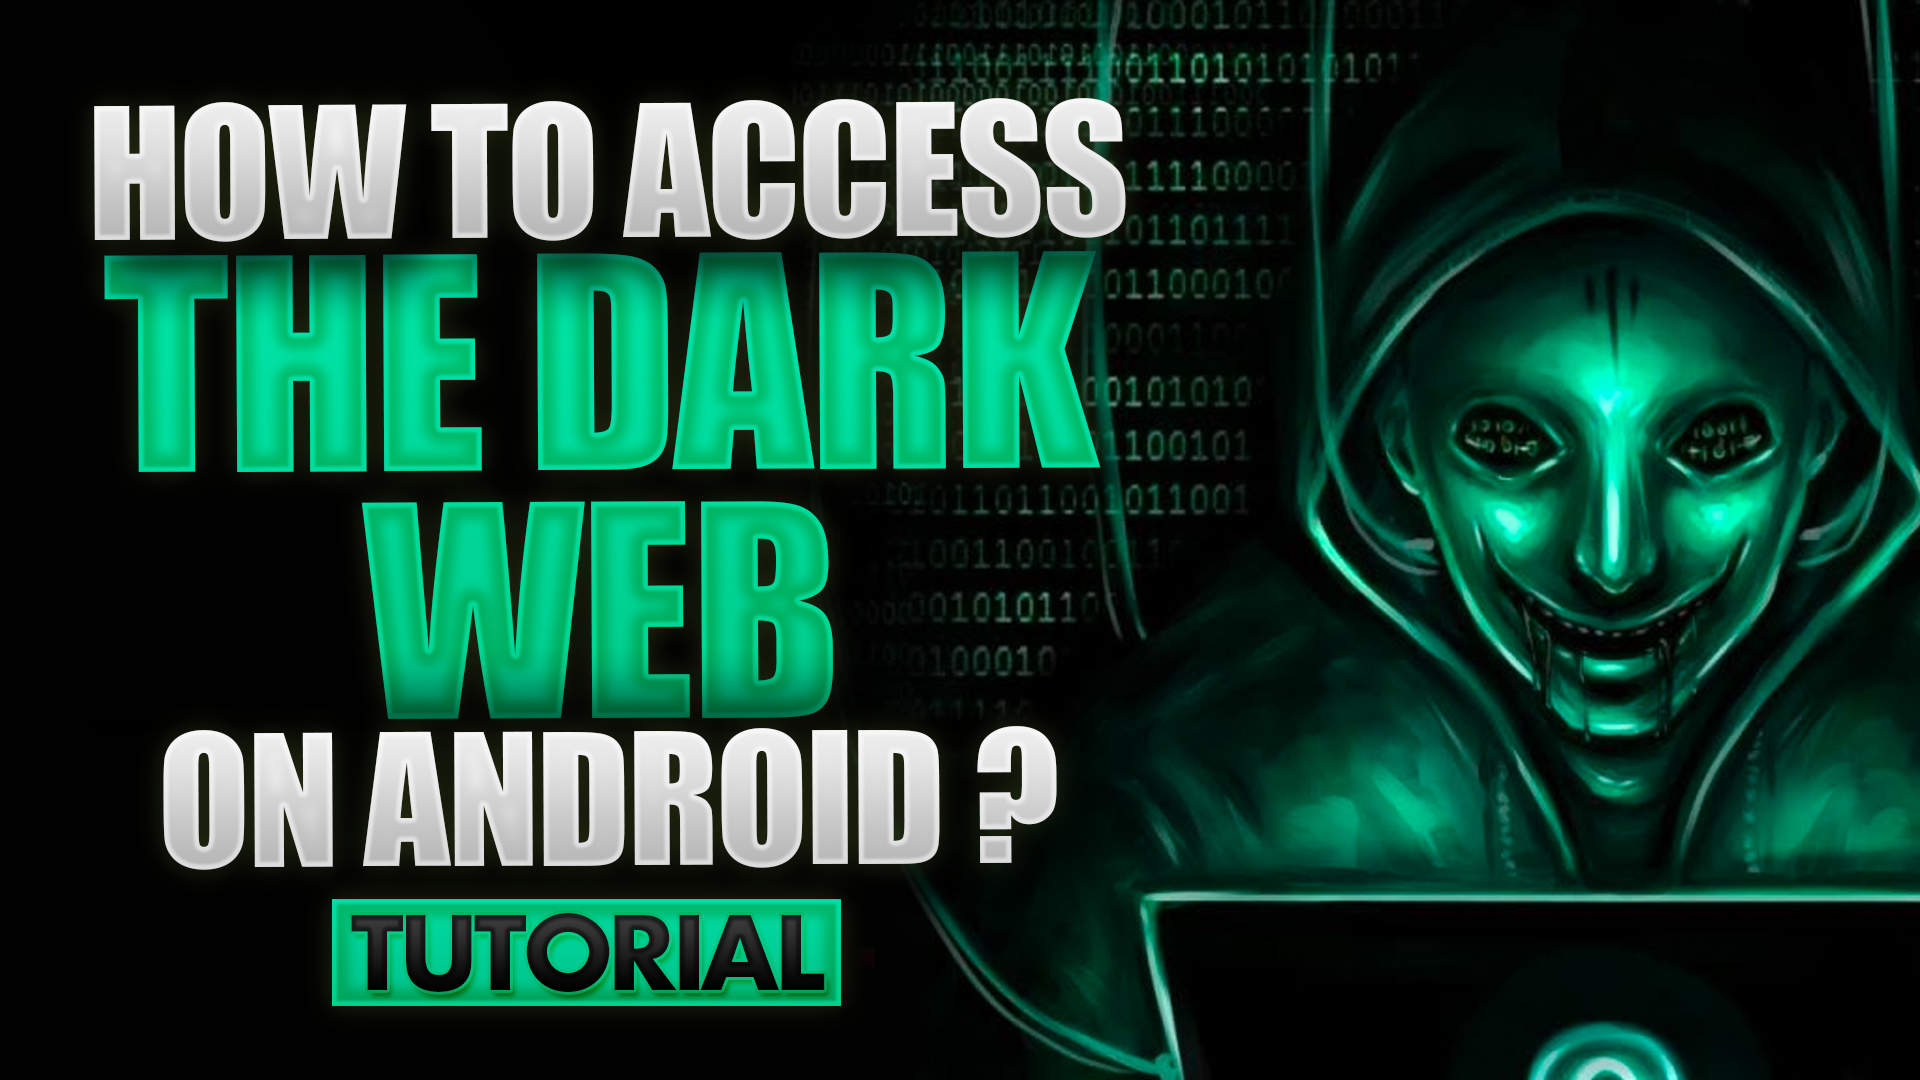 How to access the Dark Web on Android